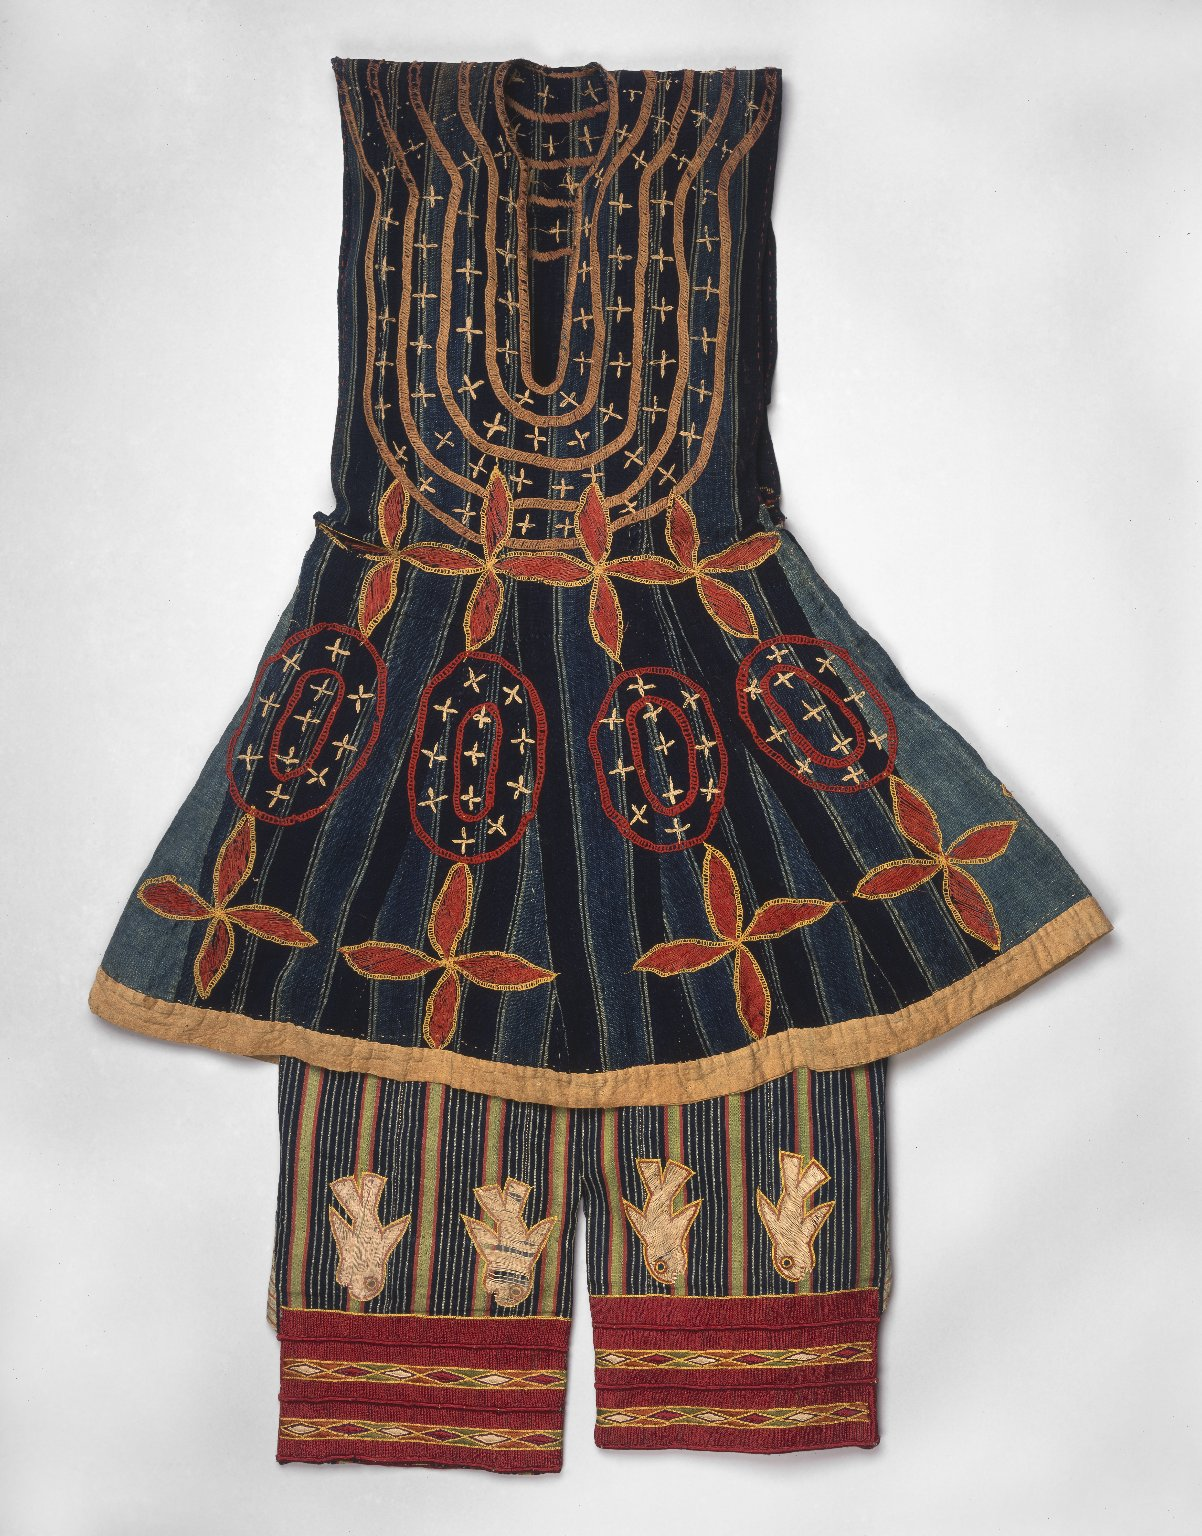 Brooklyn Museum: Robe (Kansawu) and Trousers, from 3 Piece Royal or Noble Costume